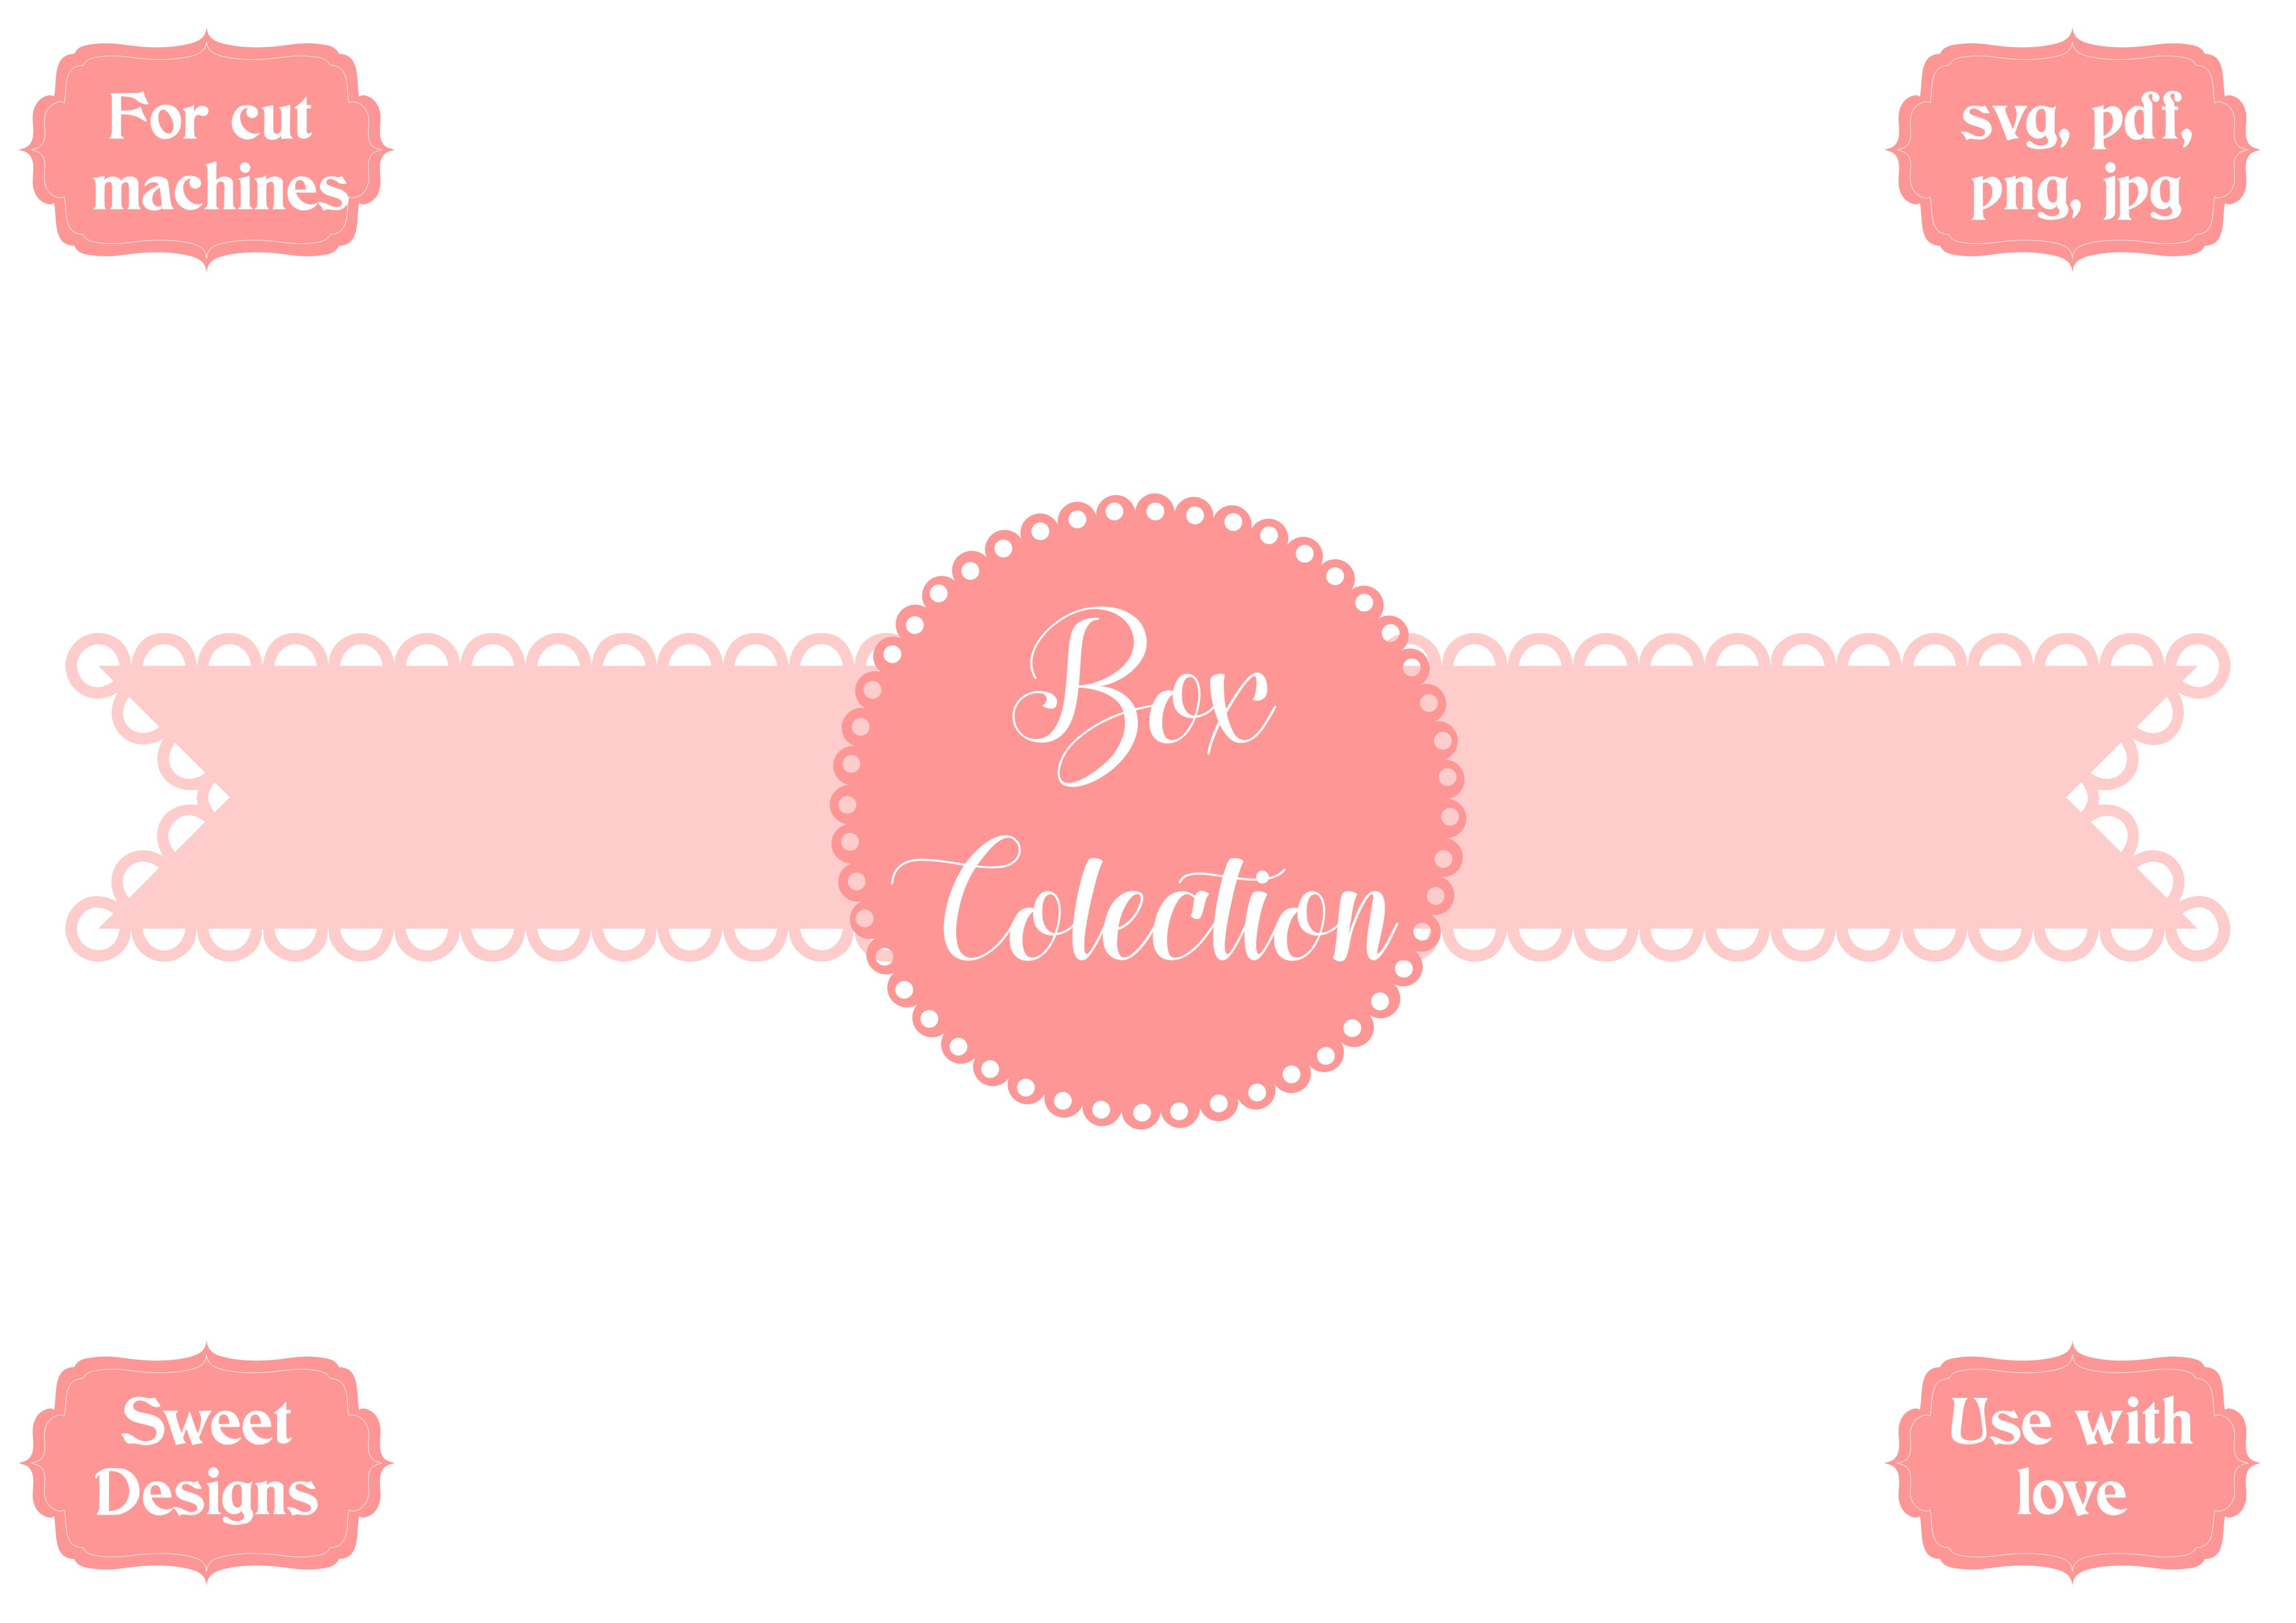 Download Free Flower Box Collection 07 Graphic By Jgalluccio Creative Fabrica for Cricut Explore, Silhouette and other cutting machines.